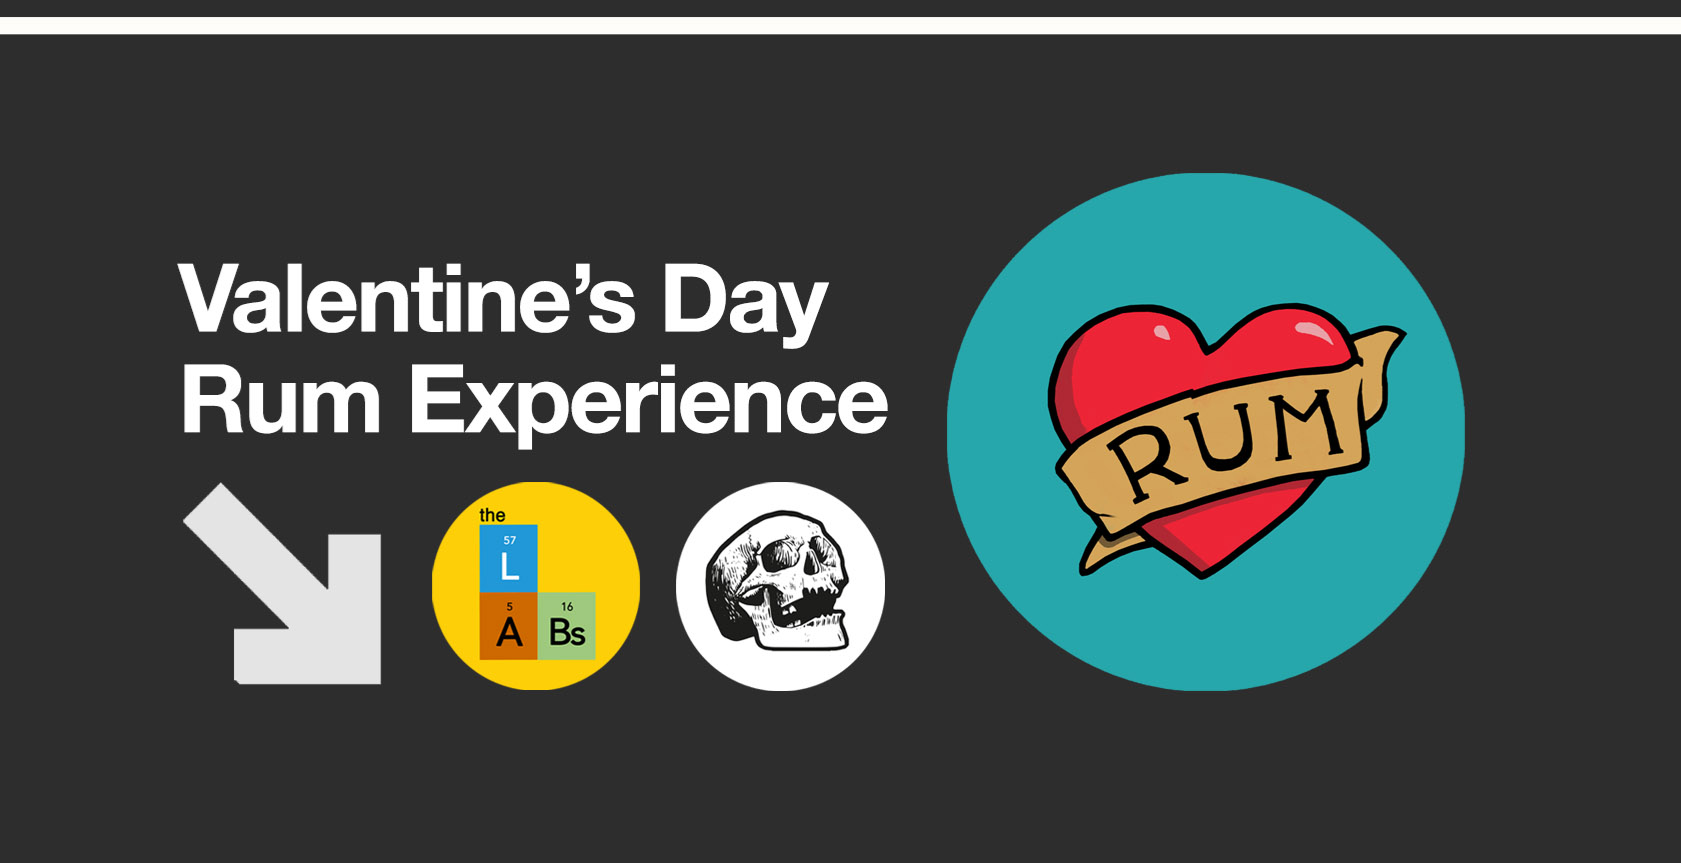 Valentine's Day Rum Making Experience